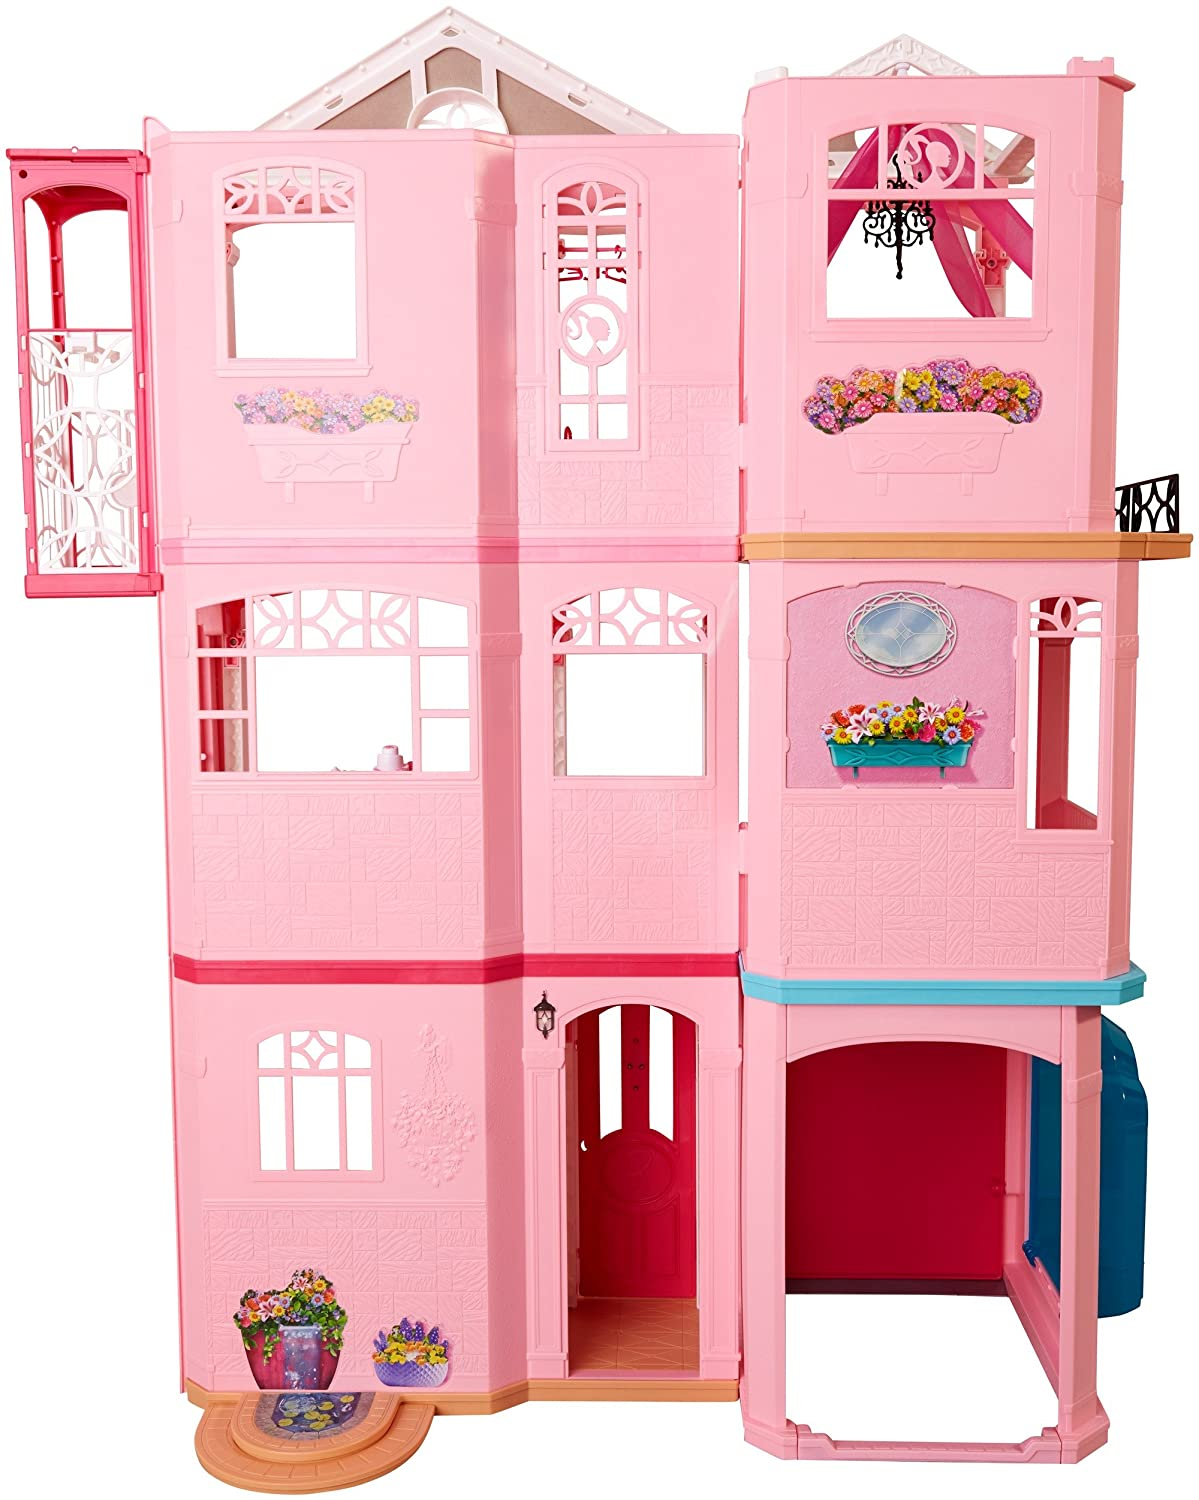 Amazon.com: Barbie Dreamhouse: Toys & Games